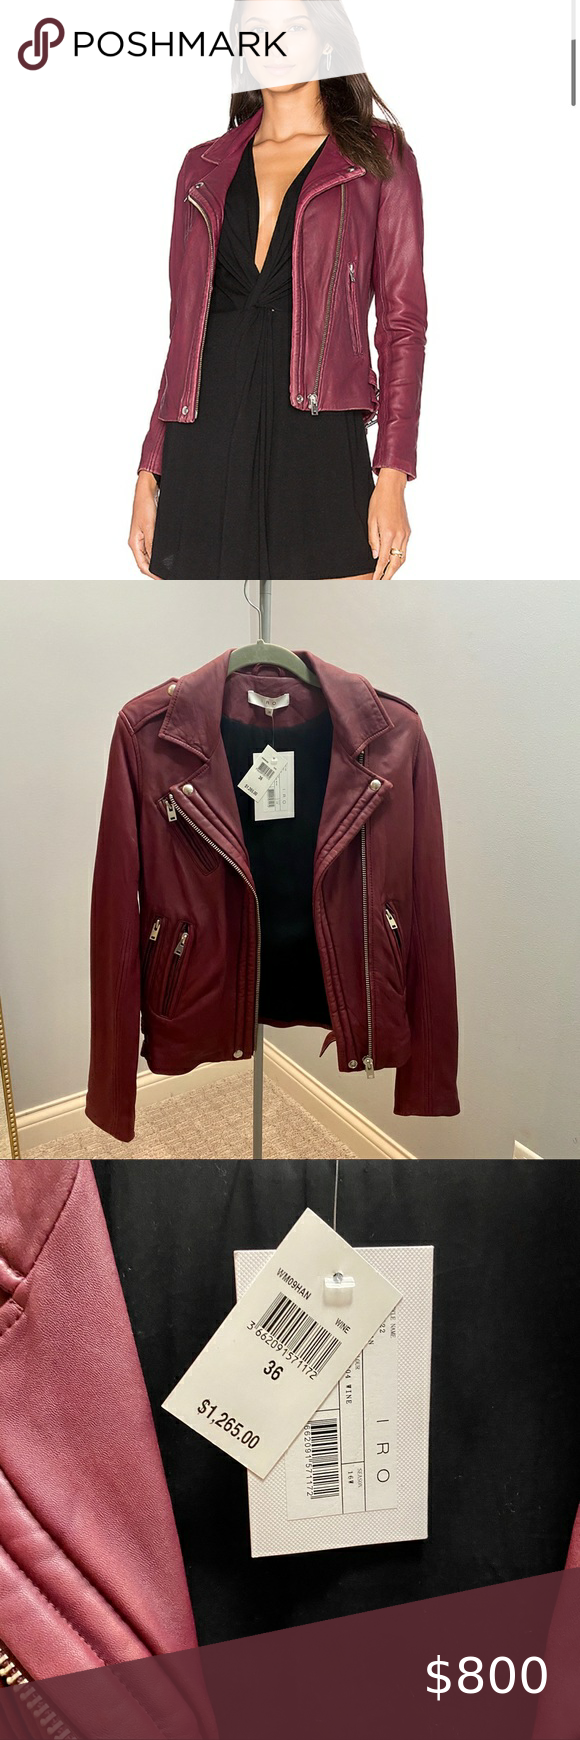 Nwt Iro Han Leather Jacket In Wine Leather Jacket Iro Leather Jacket Lamb Leather Jacket [ 1740 x 580 Pixel ]